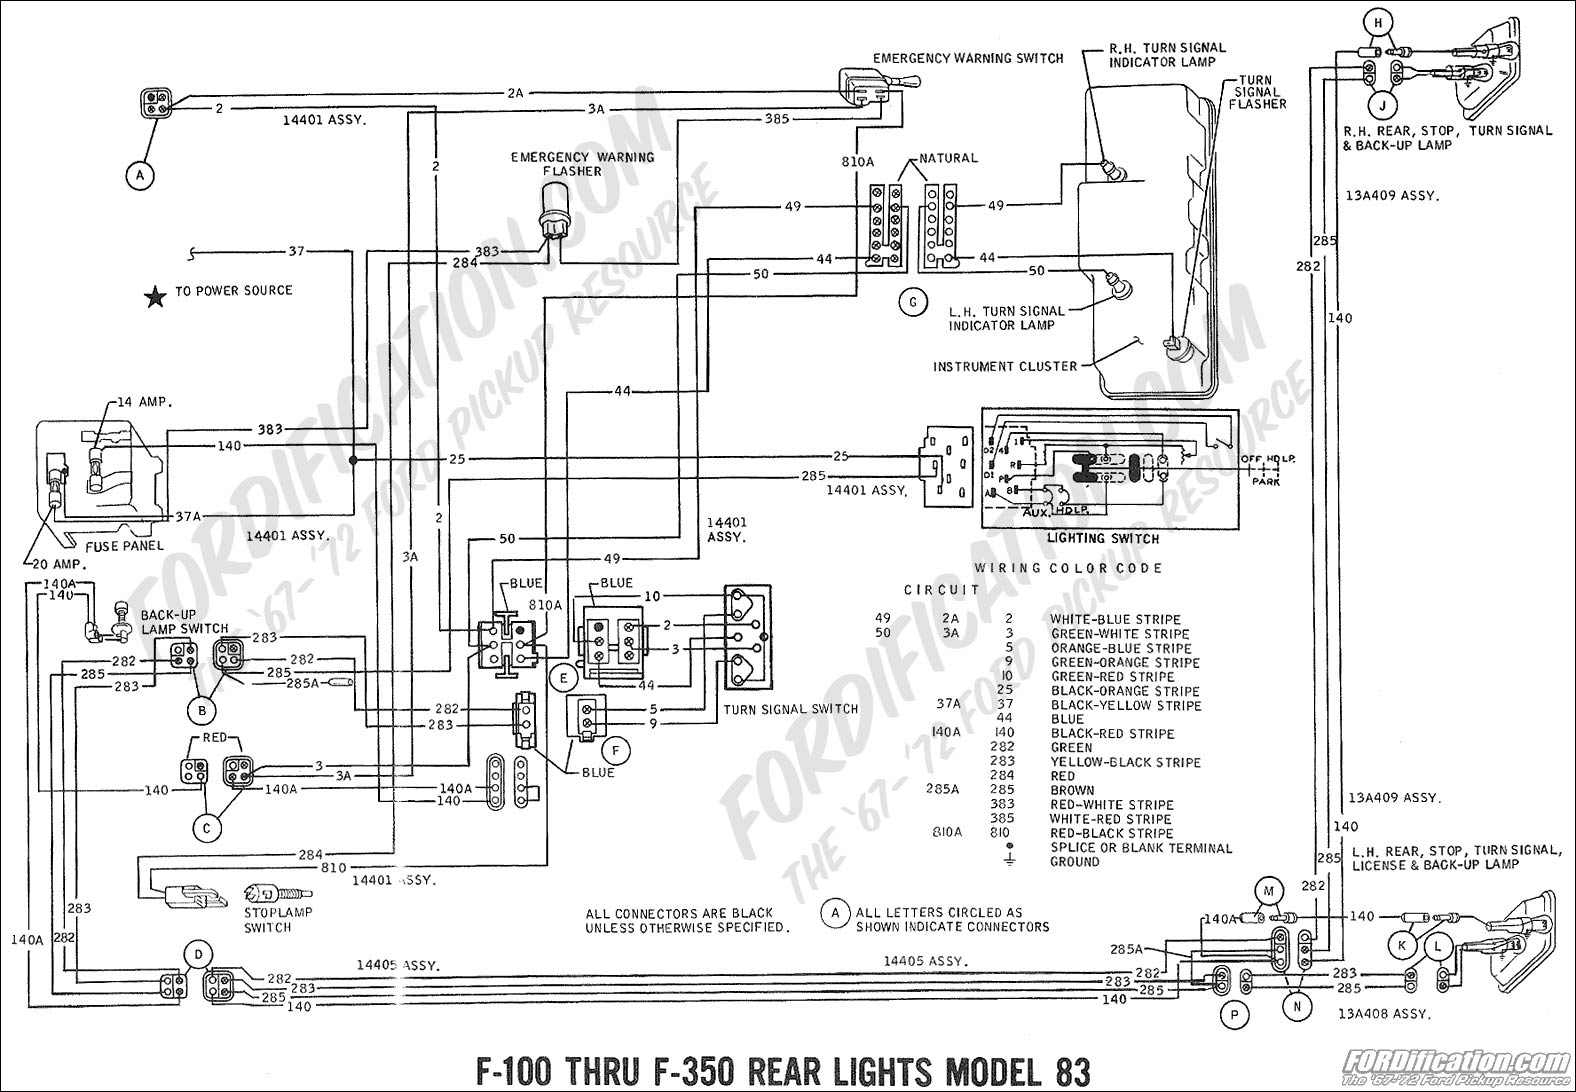 1969 Mustang Alternator Wiring Diagram : 38 Wiring Diagram